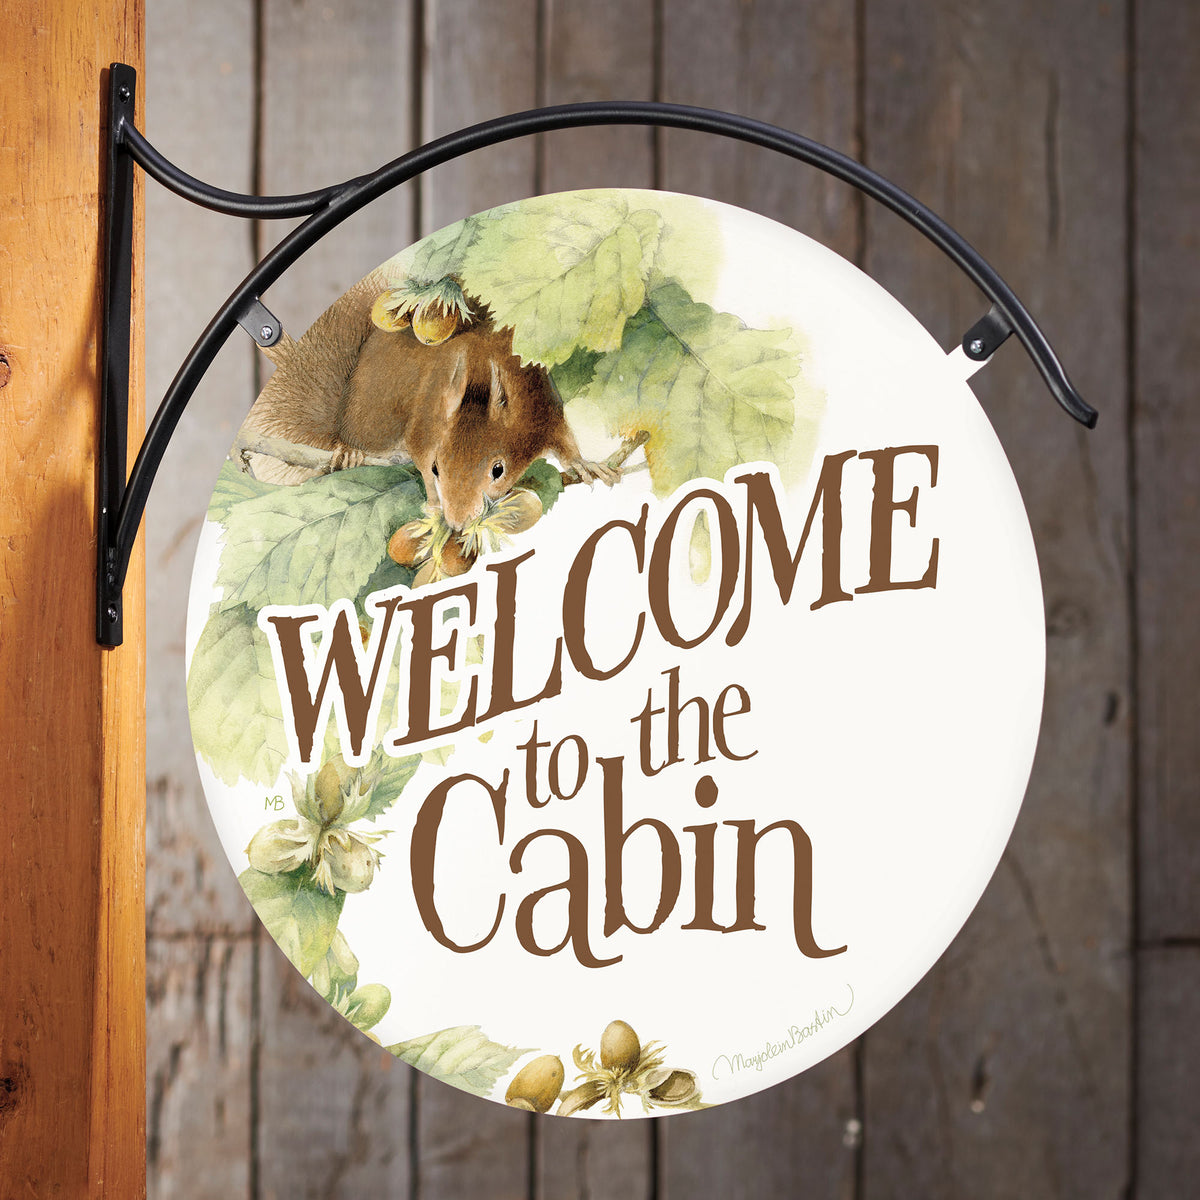 Welcome to the Cabin.